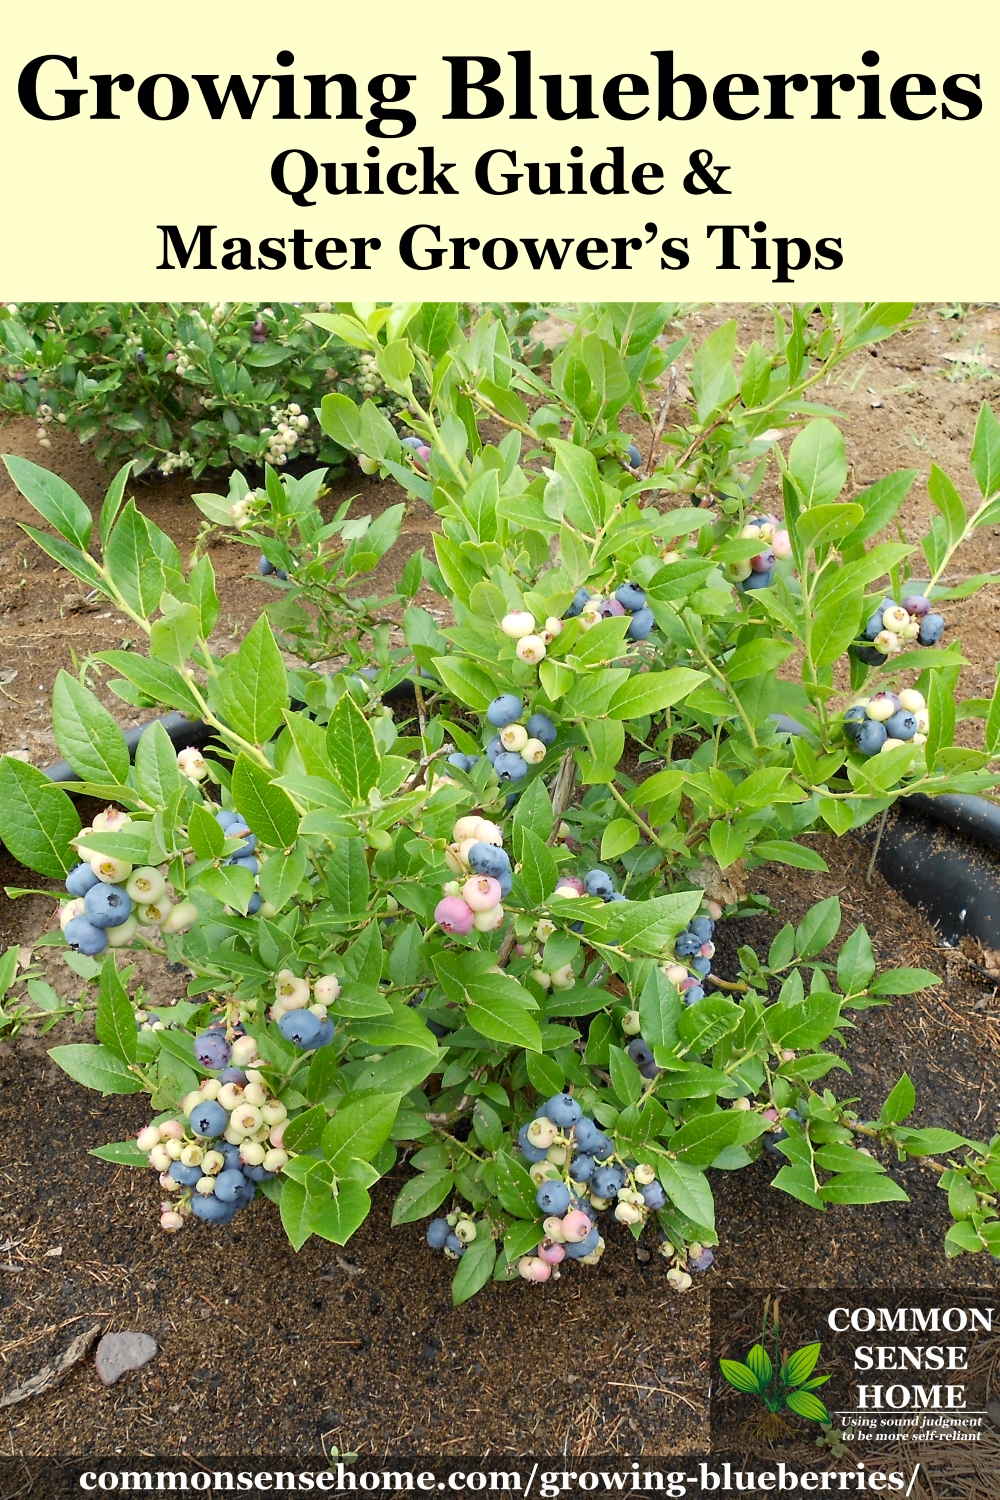 small blueberry plant loaded with a mix of ripe and unripe blueberries